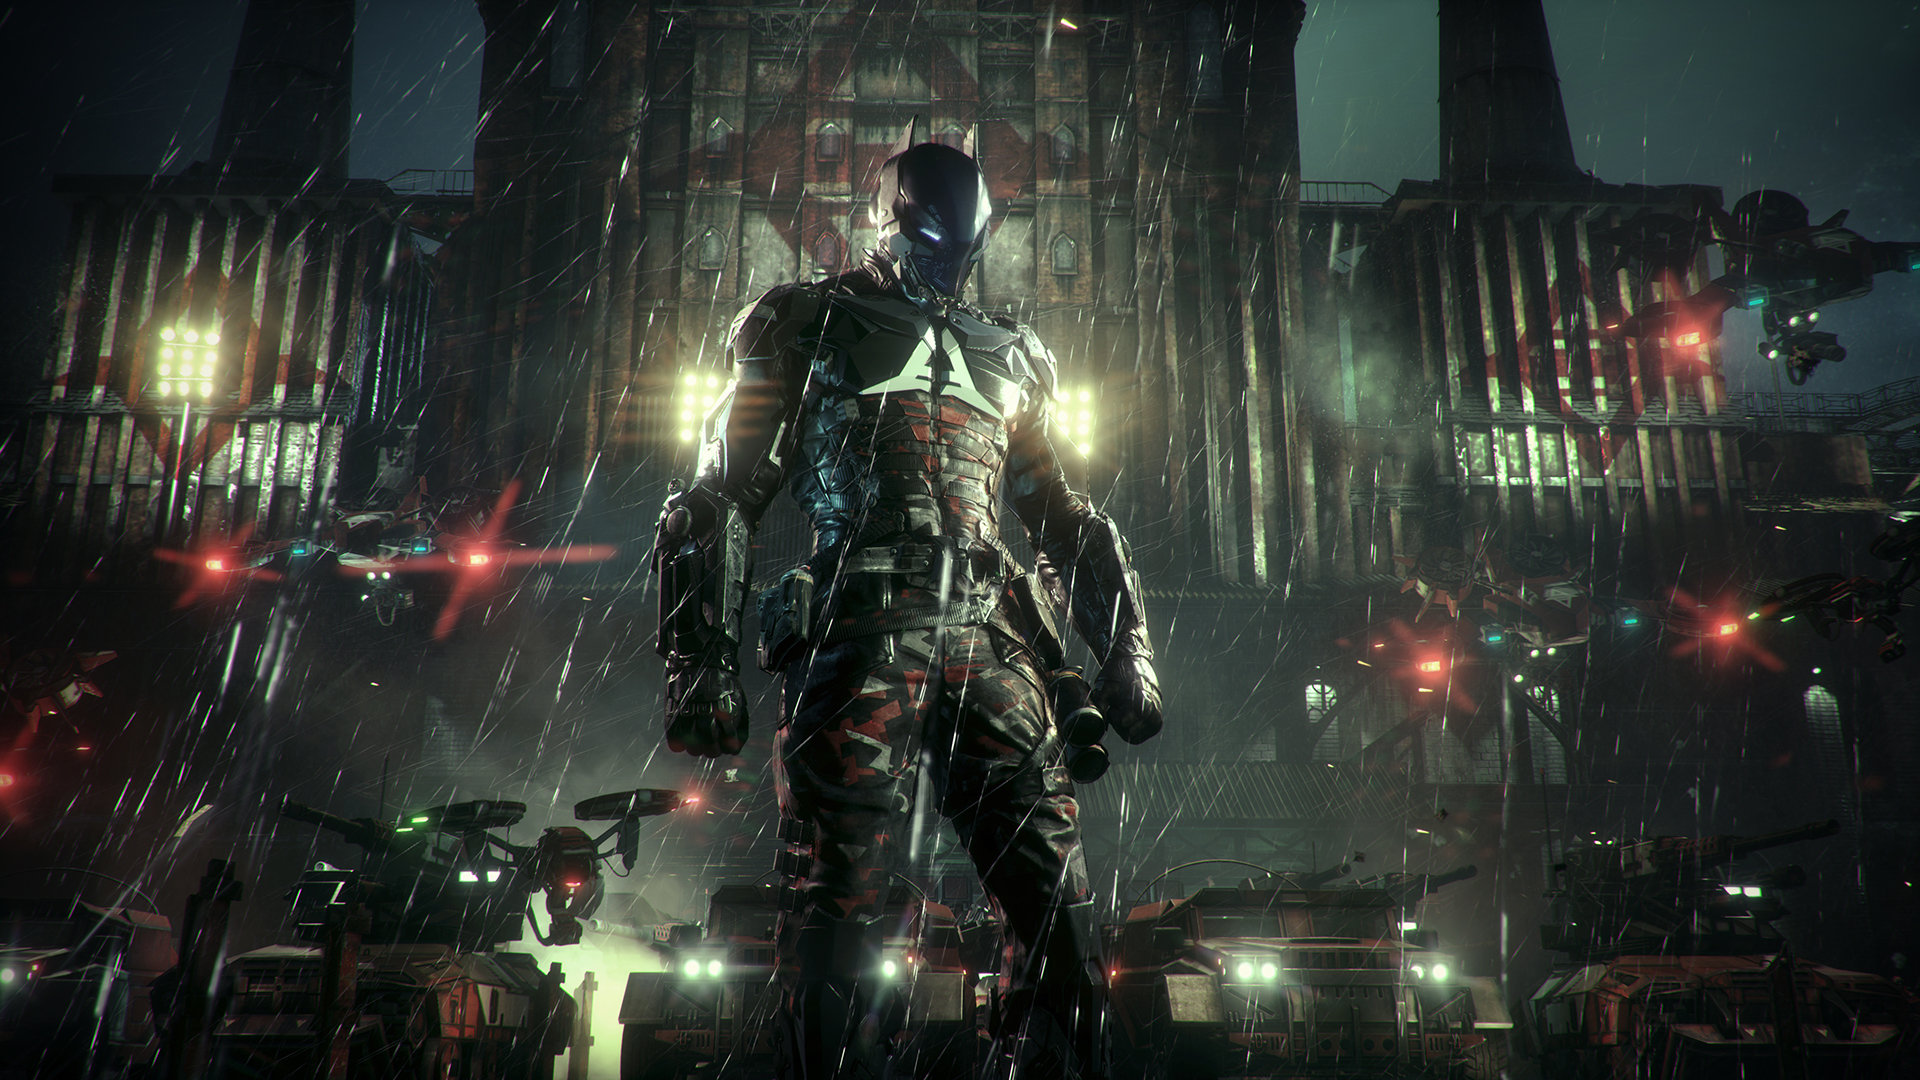 Arkham Knight Live Action Trailer: Be the Batman!